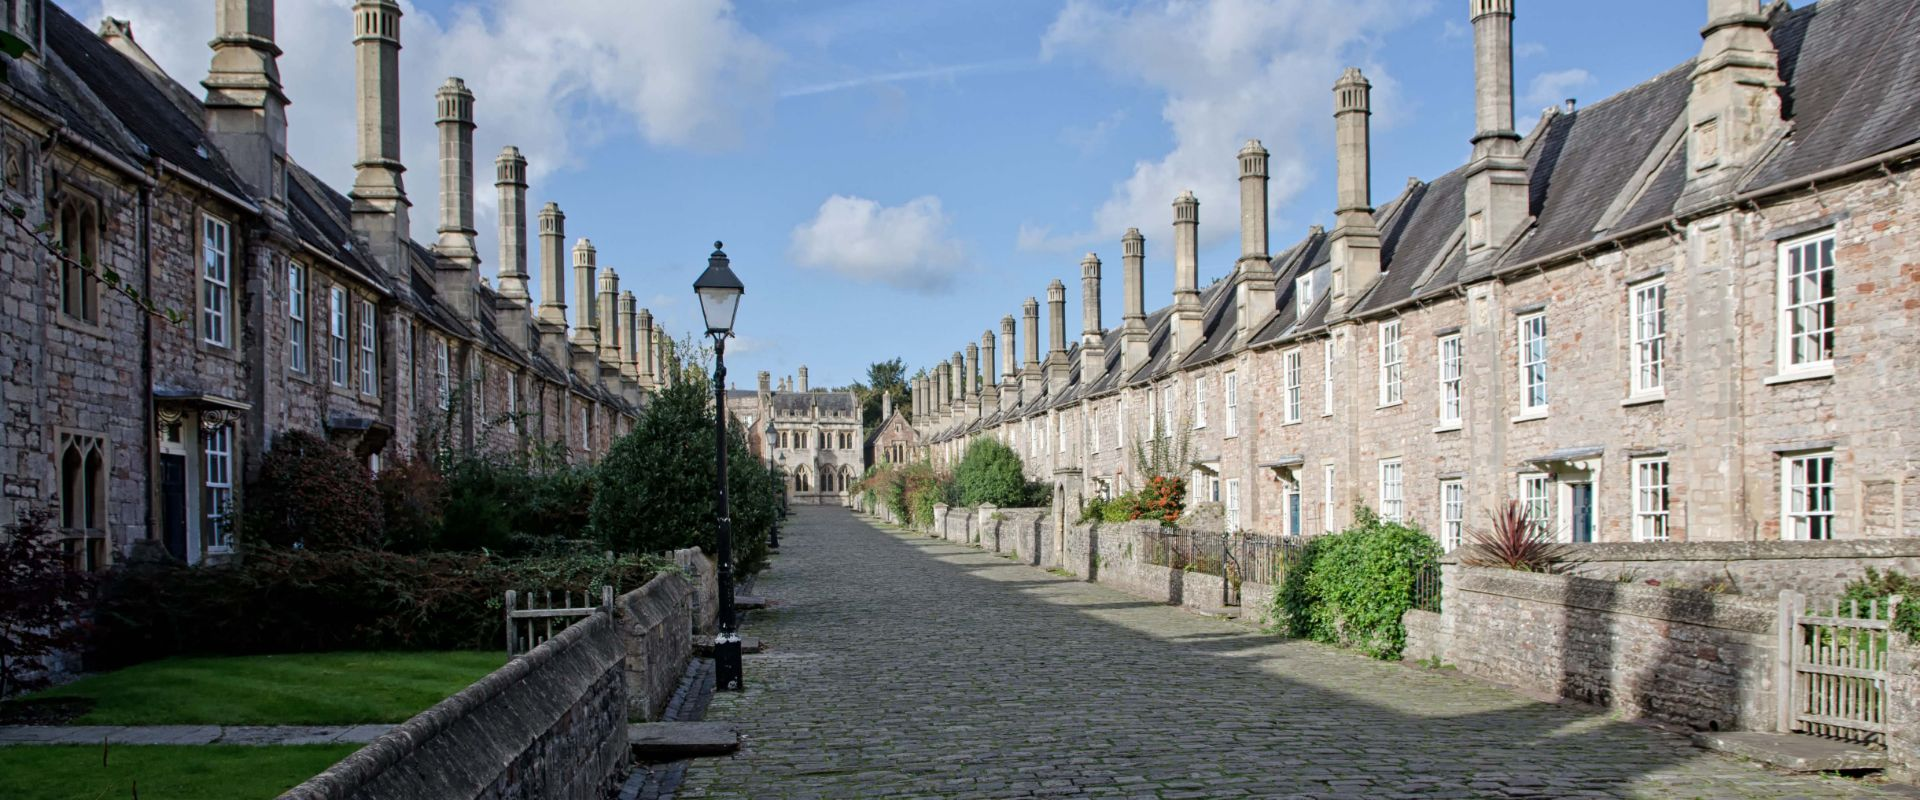 The Vicar's Close in the city of Wells